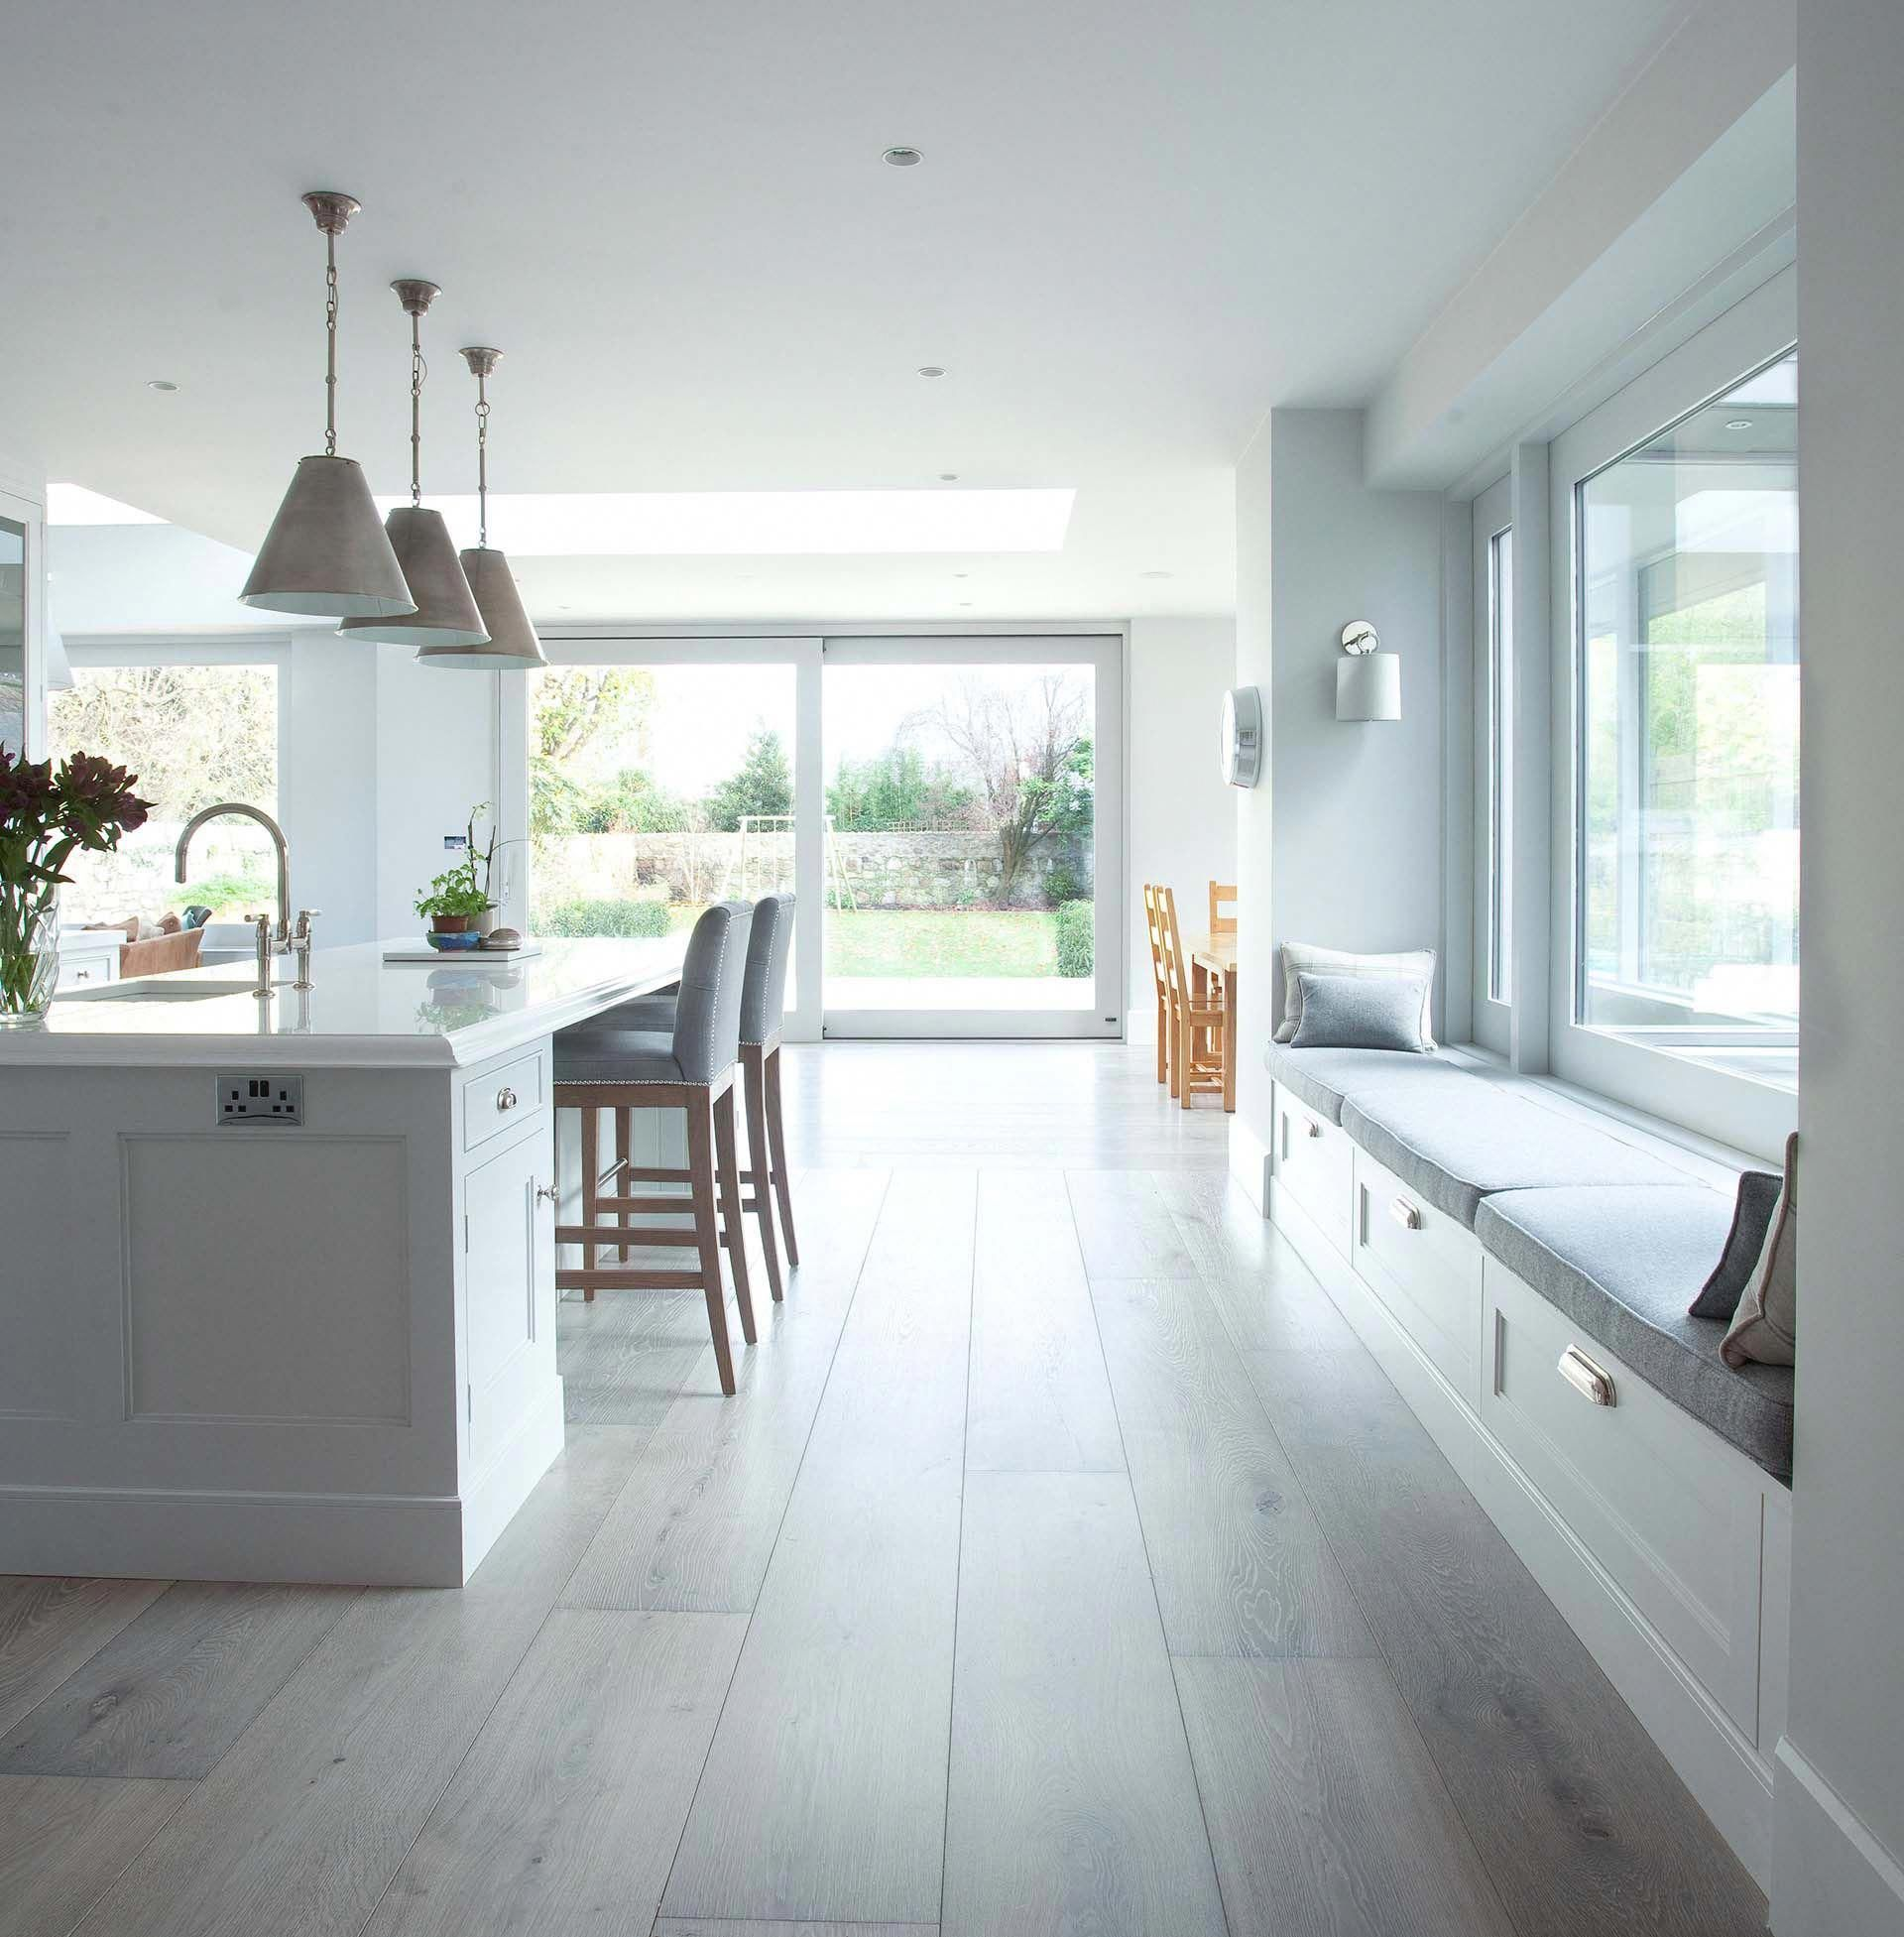 Kitchen window kerala  we specialise in using the space around your window to create window